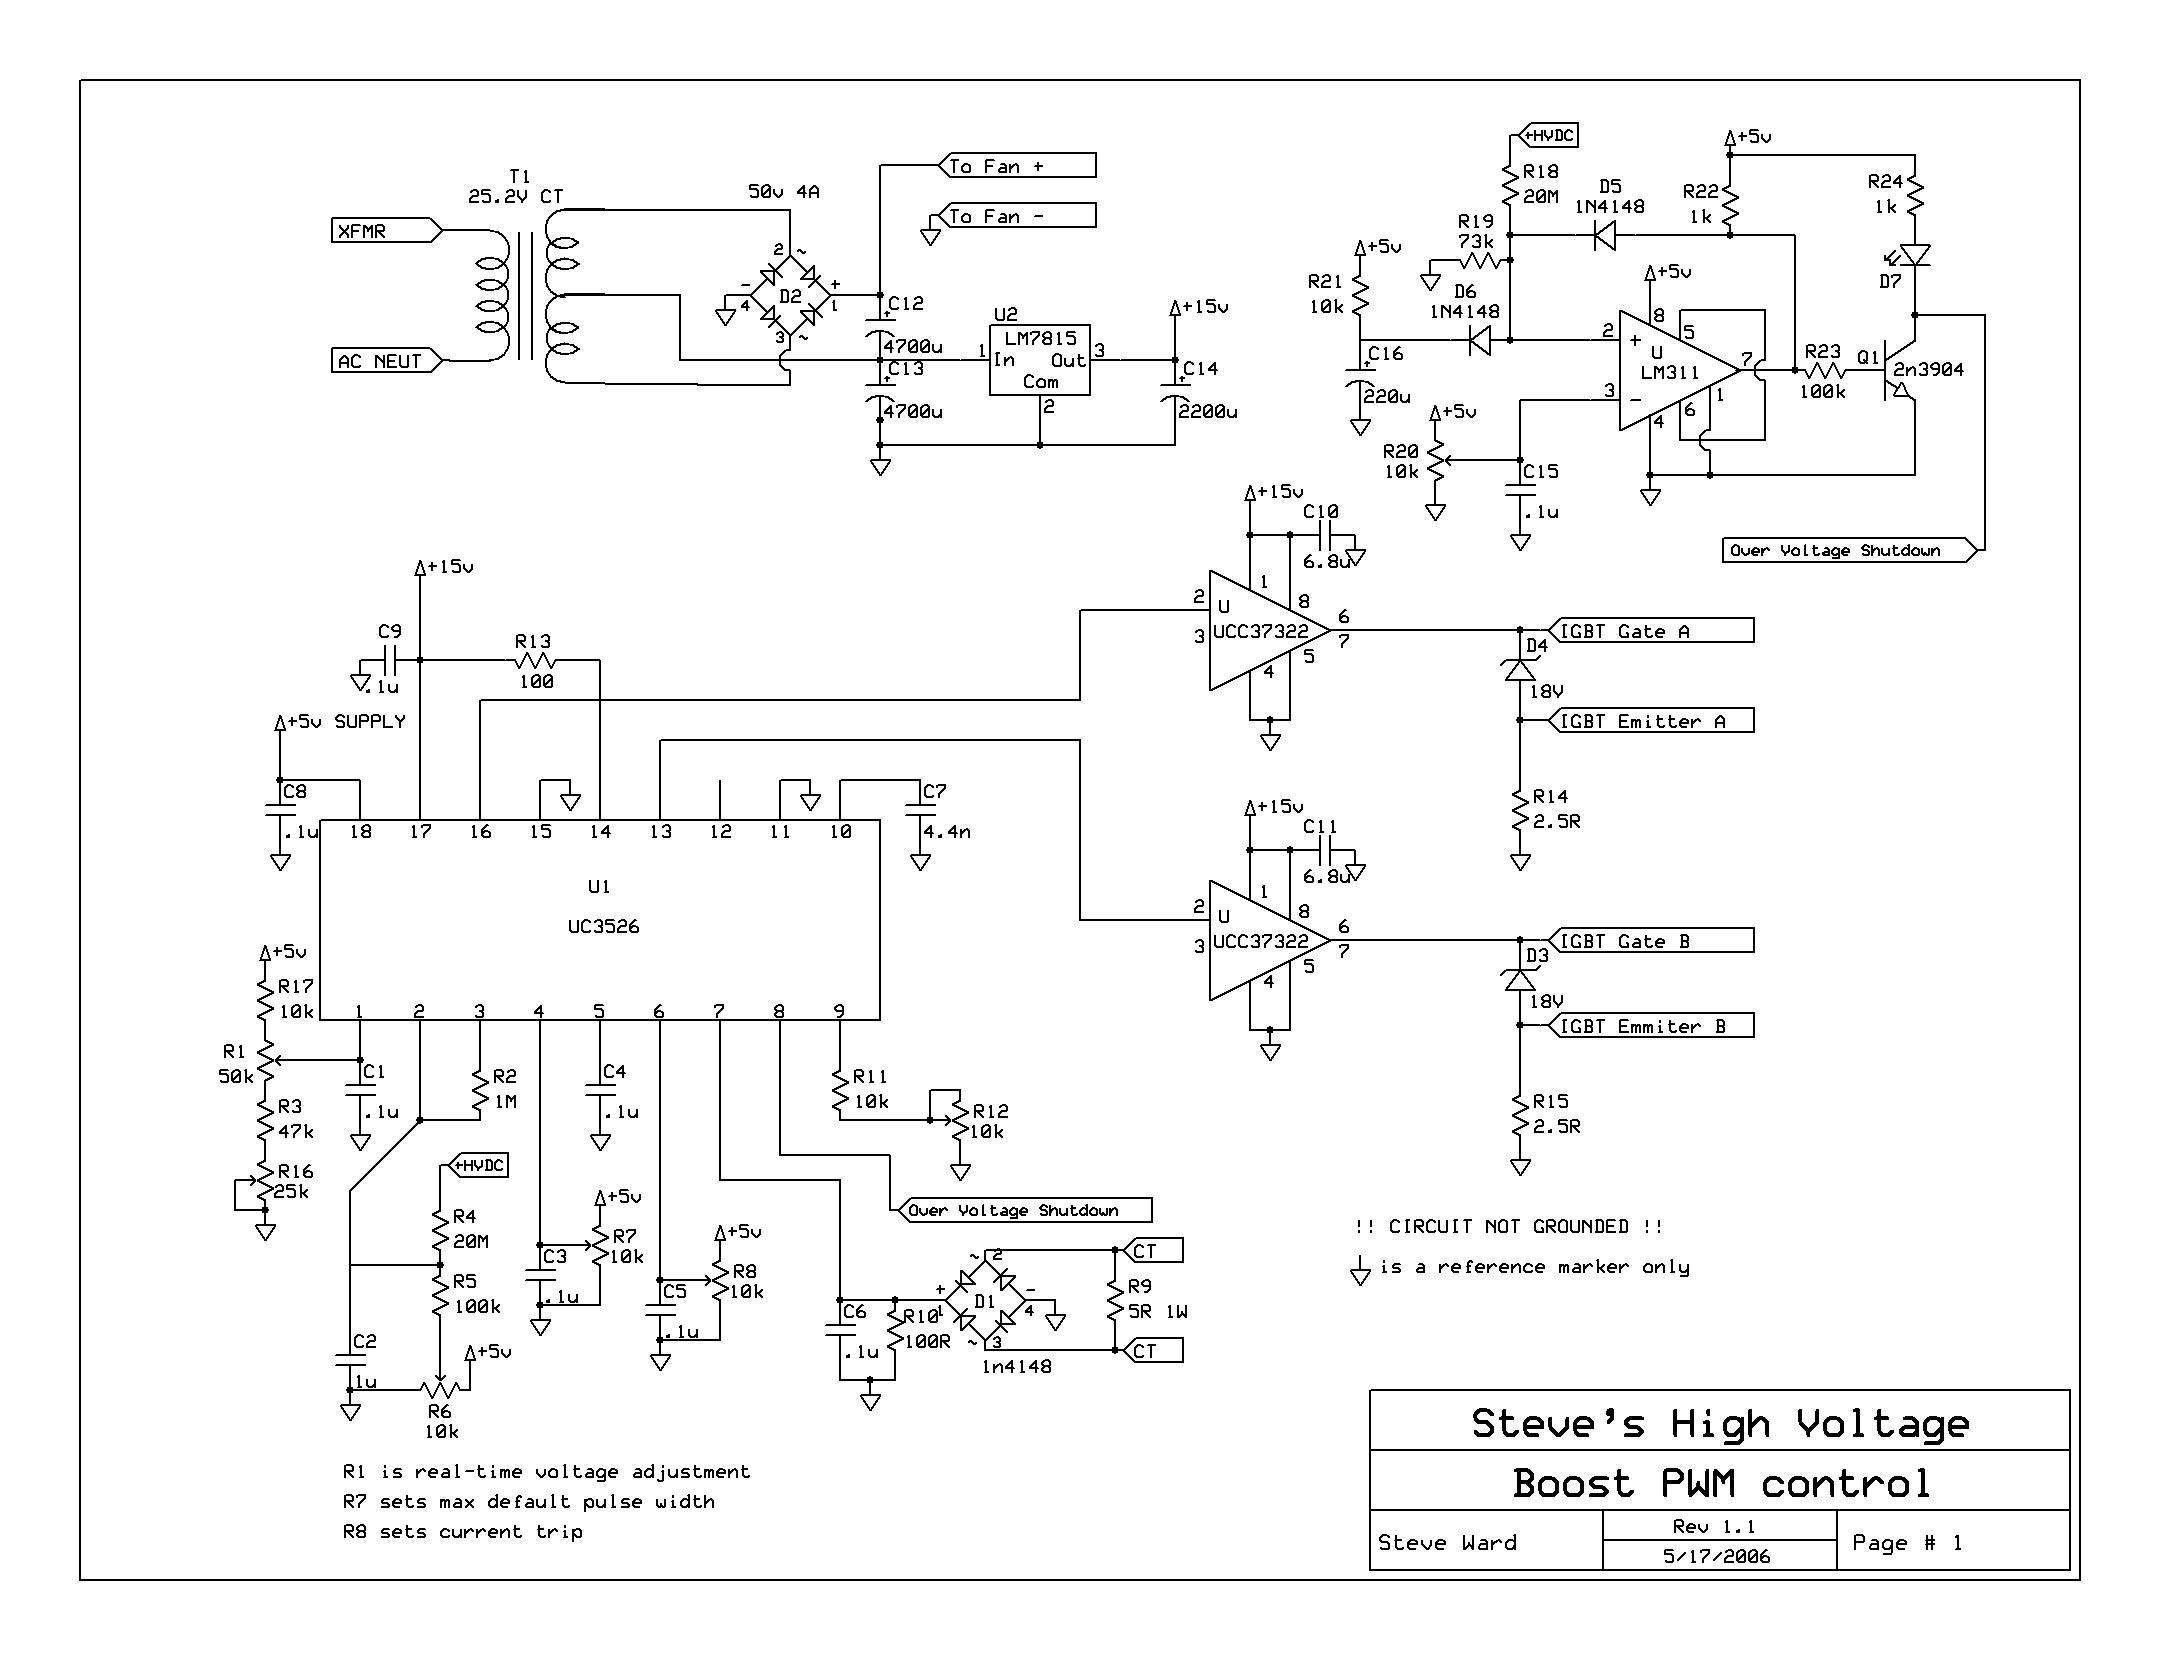 12kw Pfc Boost Converter Circuit Diagram Of A Typical Power Factor Correction Schematics For The Pwm And Low Voltage Section